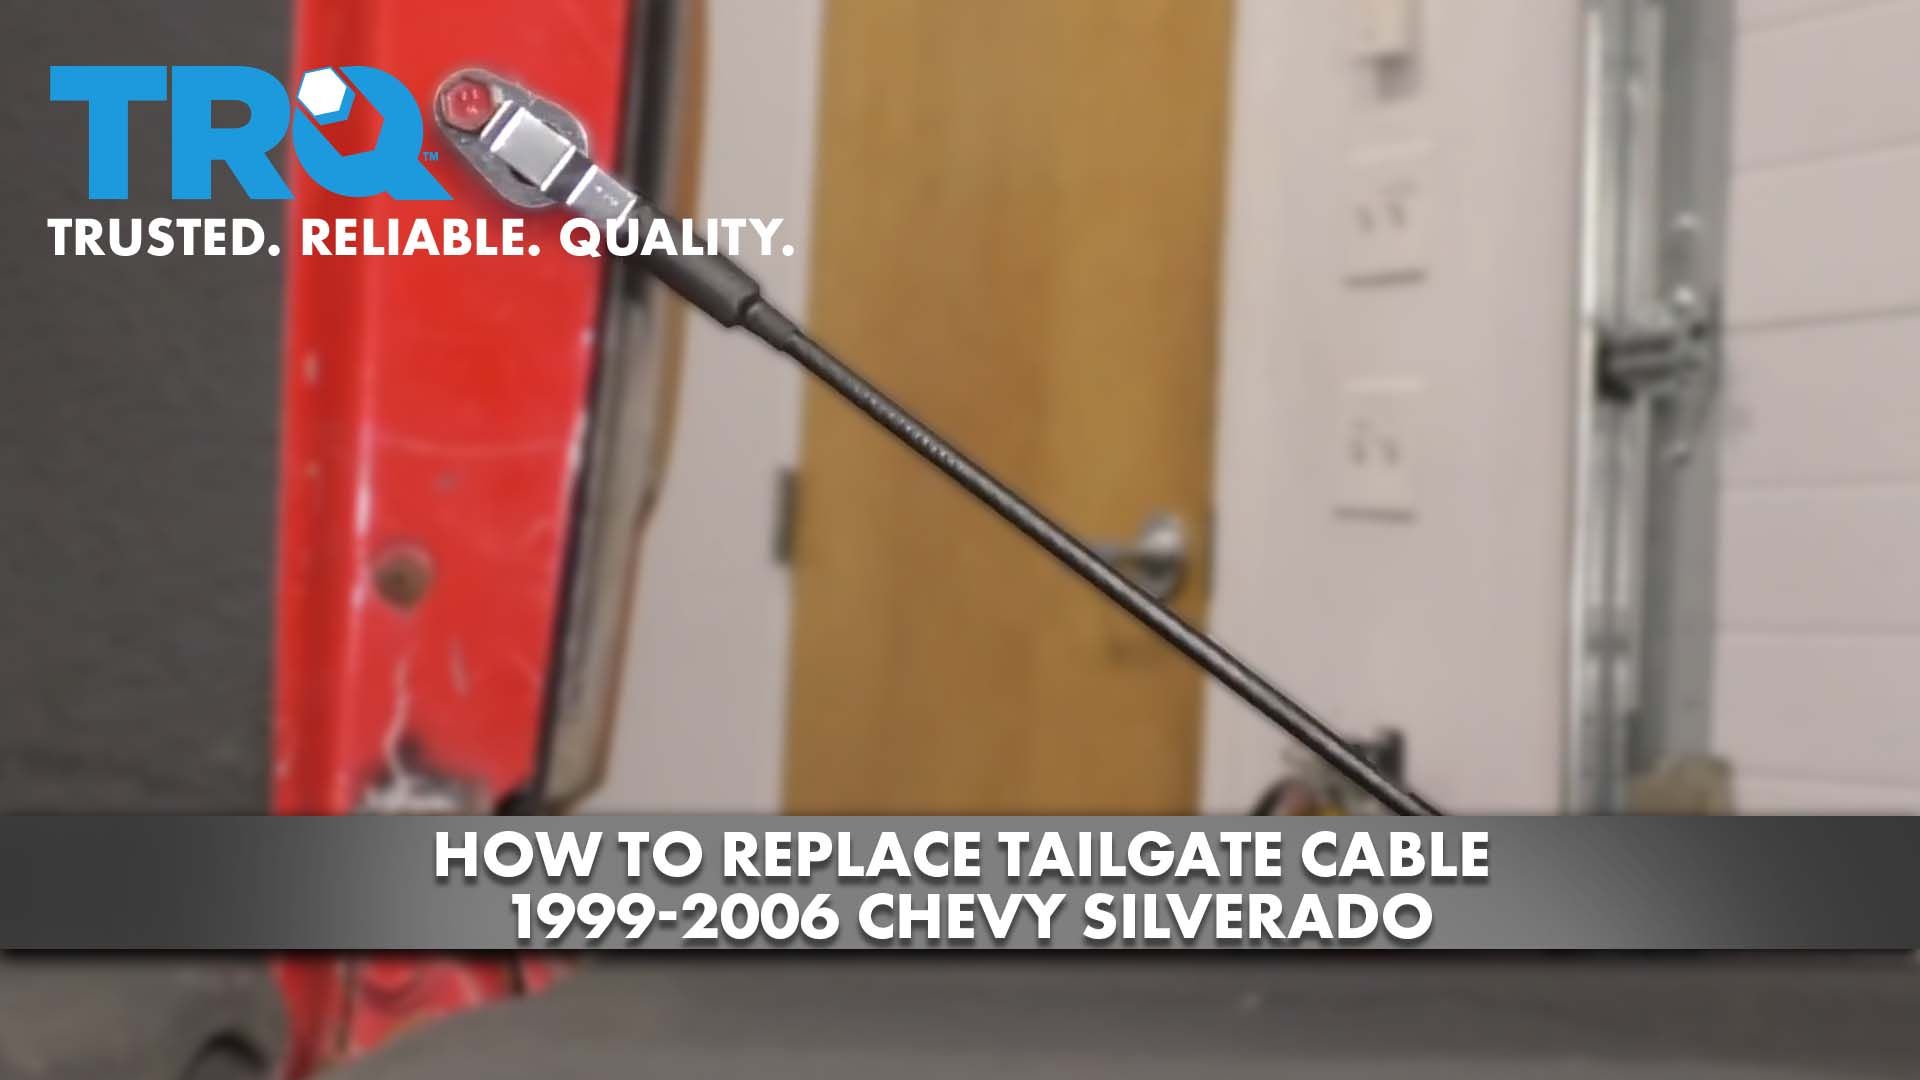 How to Replace Tailgate Cable 1999-06 Chevy Silverado